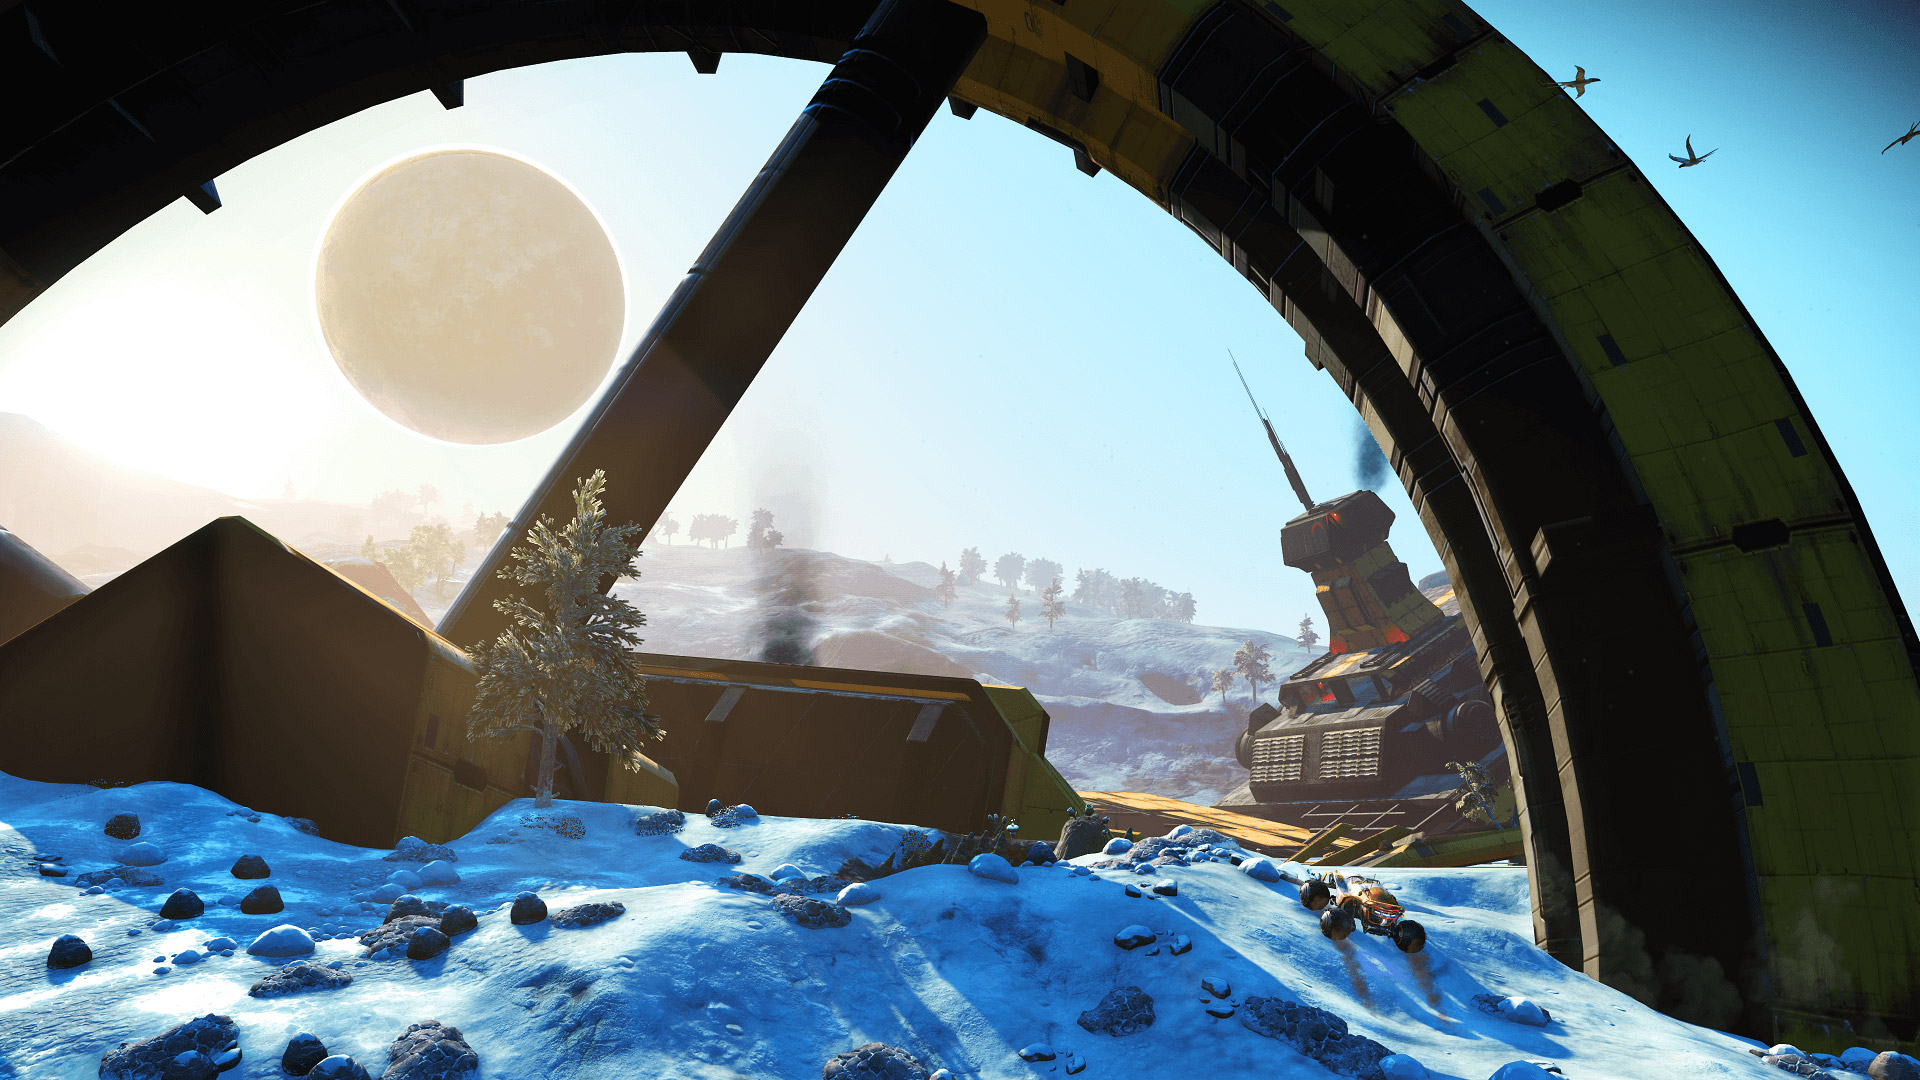 'No Man's Sky' VR Review – A Wonderful, Deeply Flawed Space Odyssey